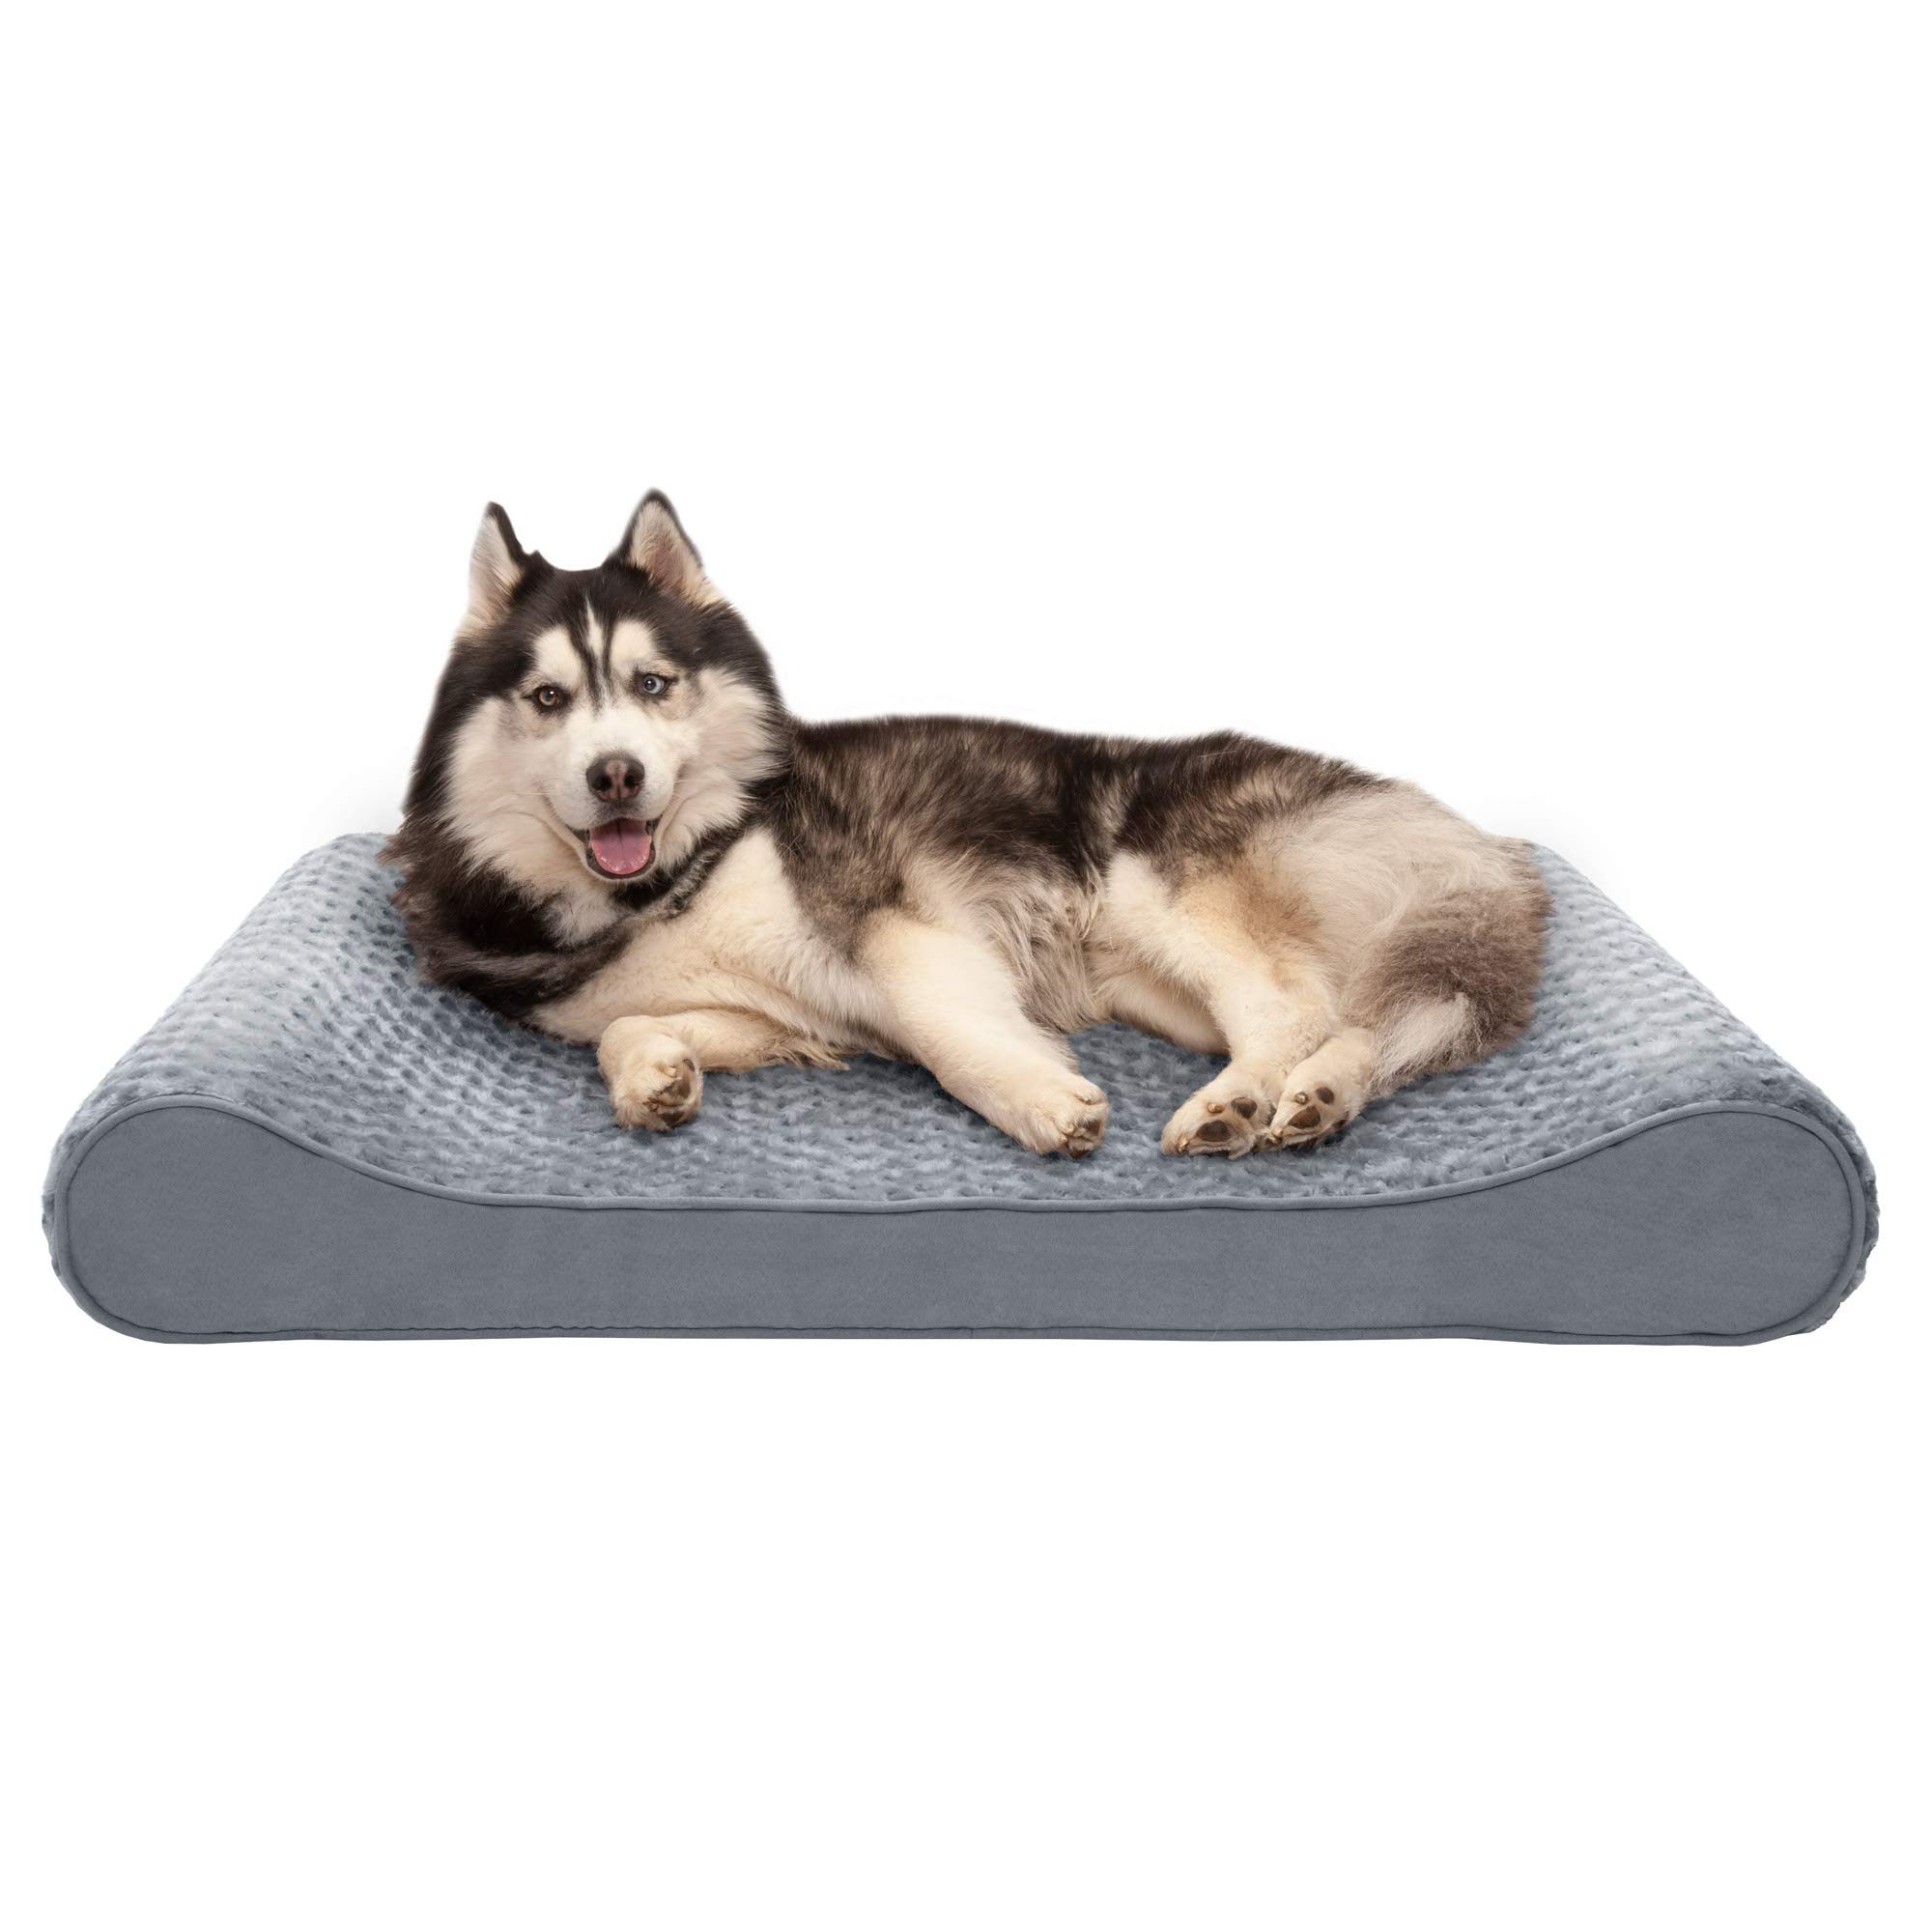 Furhaven Pet Dog Bed   Memory Foam Ultra Plush Faux Fur Ergonomic Luxe Lounger Cradle Mattress Contour Pet Bed w/ Removable Cover for Dogs & Cats, Gray, Jumbo